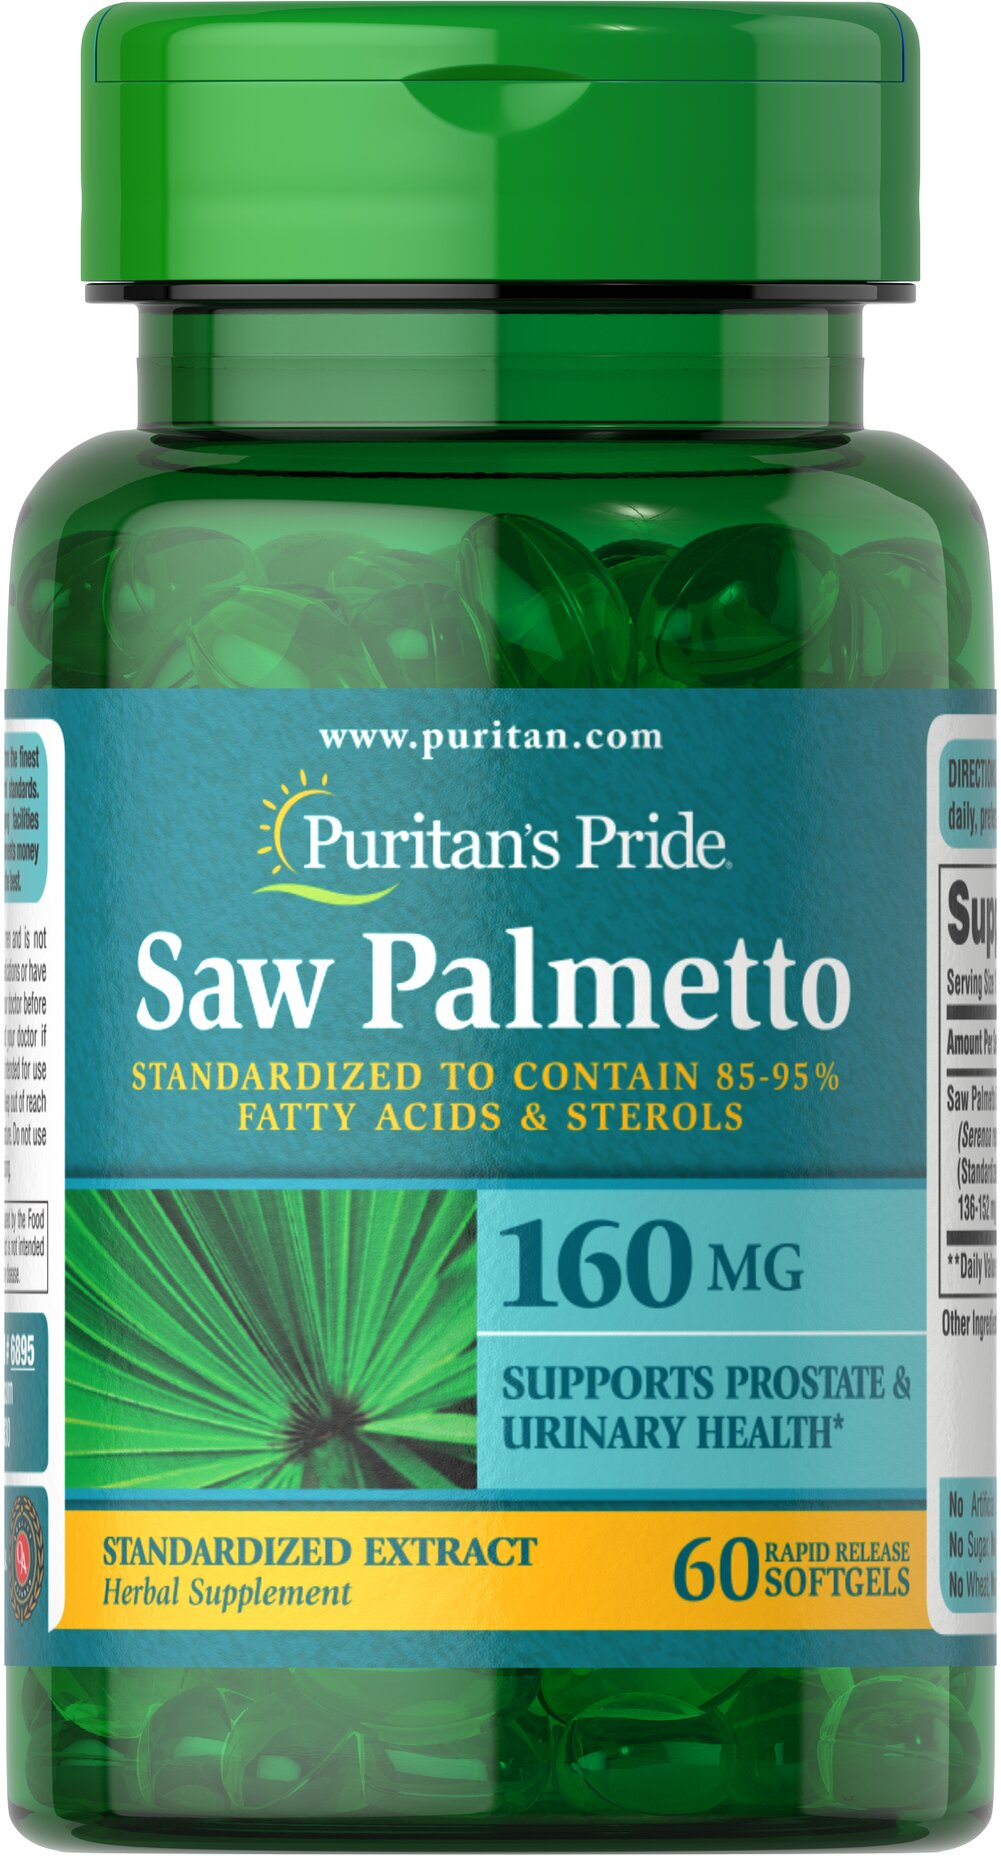 Saw Palmetto Standardized Extract 160 mg  60 Softgels 160 mg $11.99